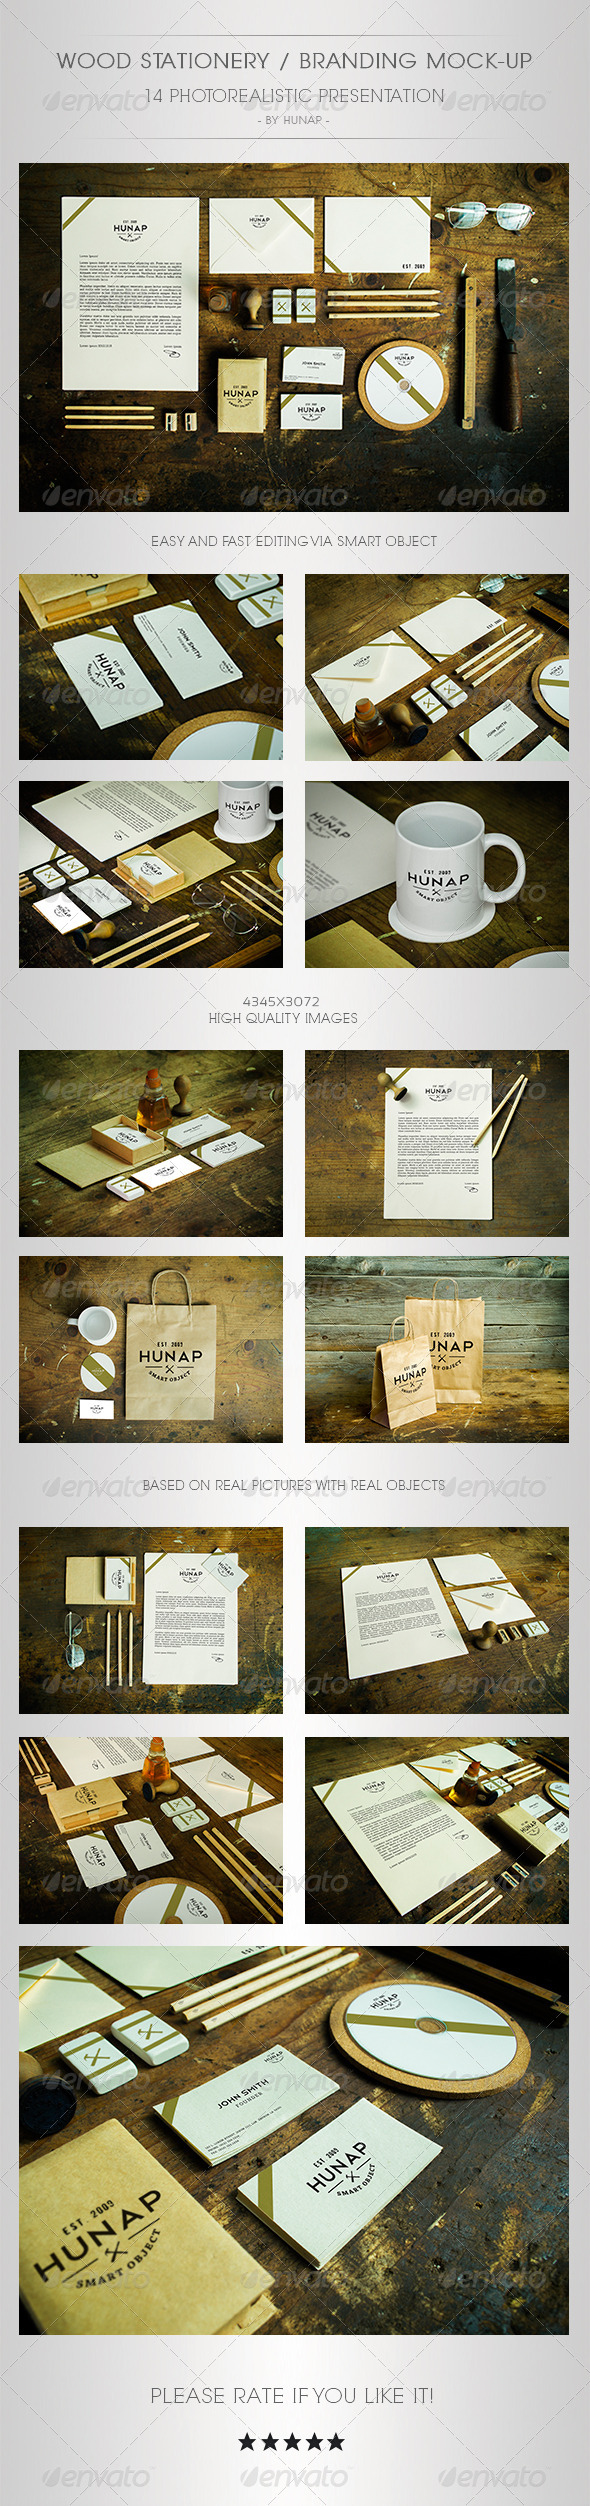 Wood Stationery Branding Mock-Up